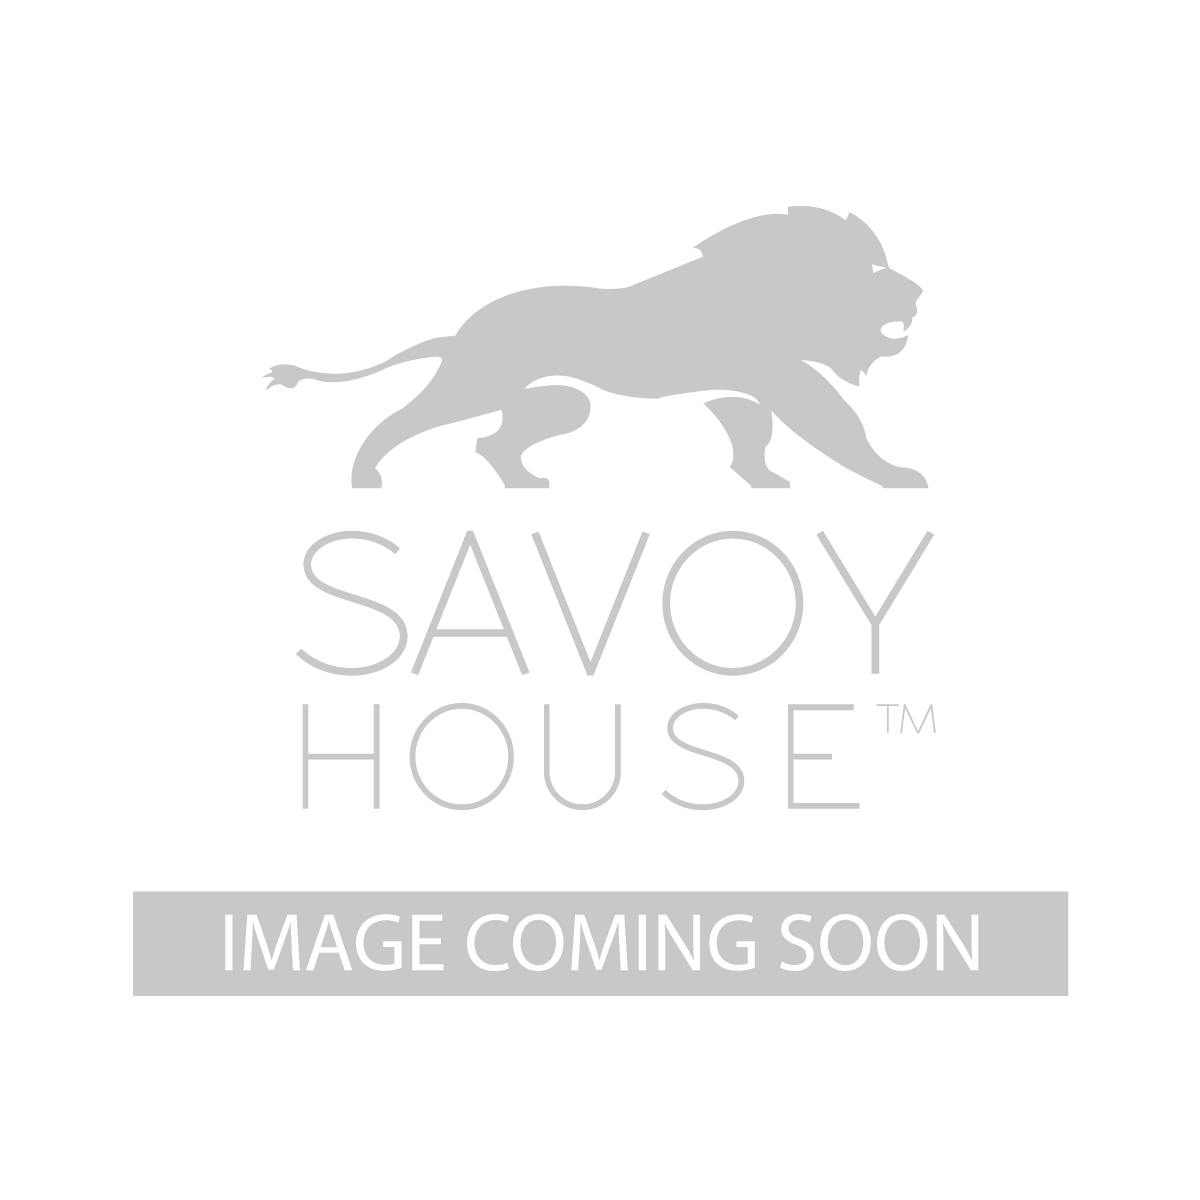 56 578 5WA 13 Connell 56 inch 5 Blade Ceiling Fan by Savoy House